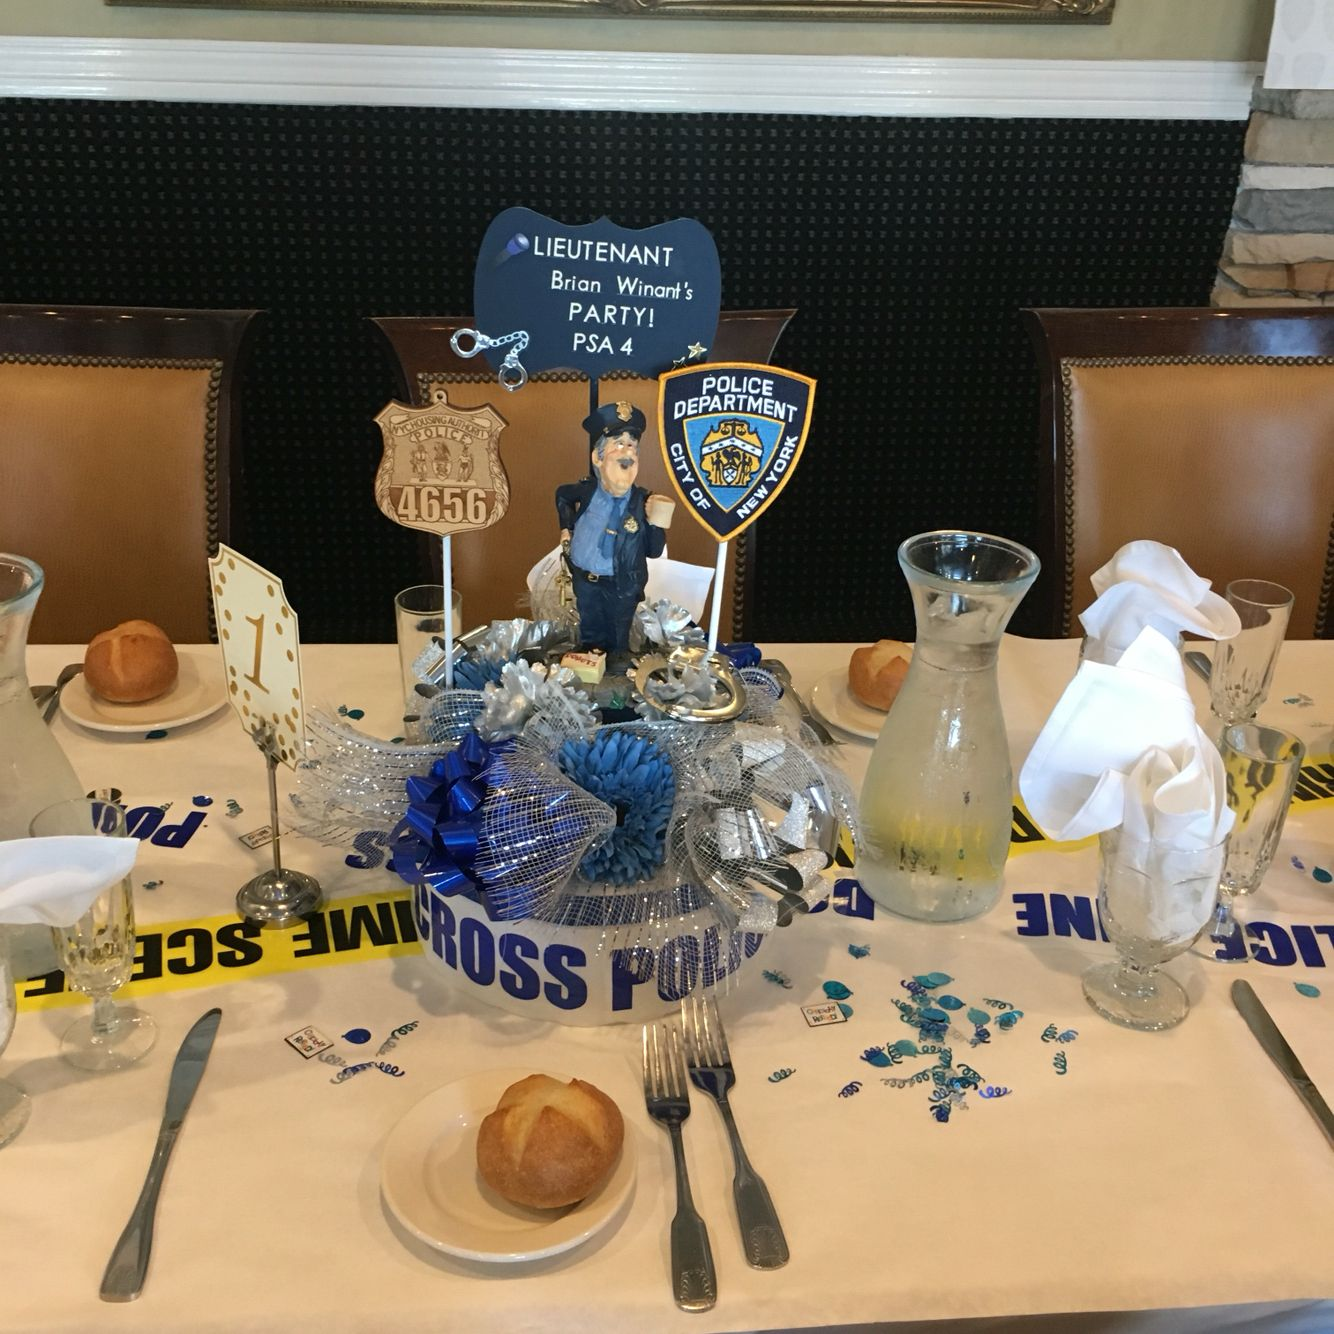 Party Decorations Table Centerpieces: Pin By Yelena W On Police Retirement Party. DIY